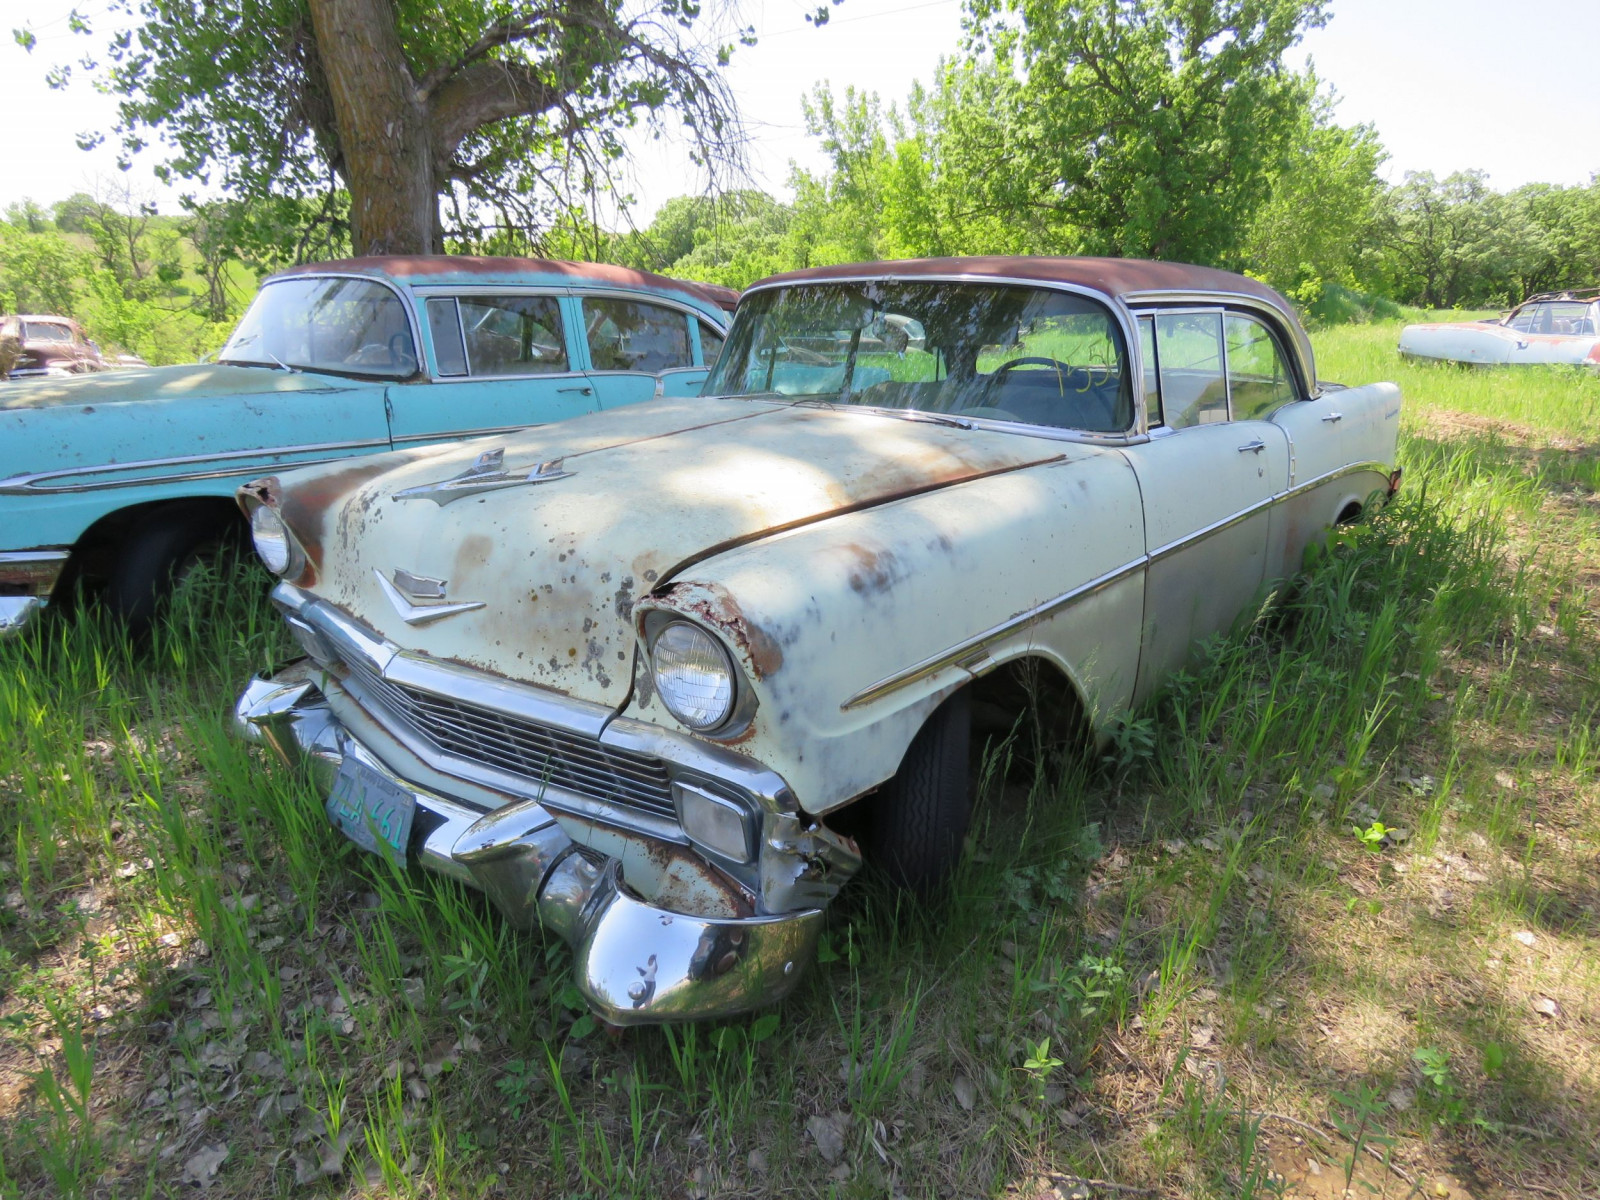 1956 Chevrolet 4dr HT for Project or parts - Image 1